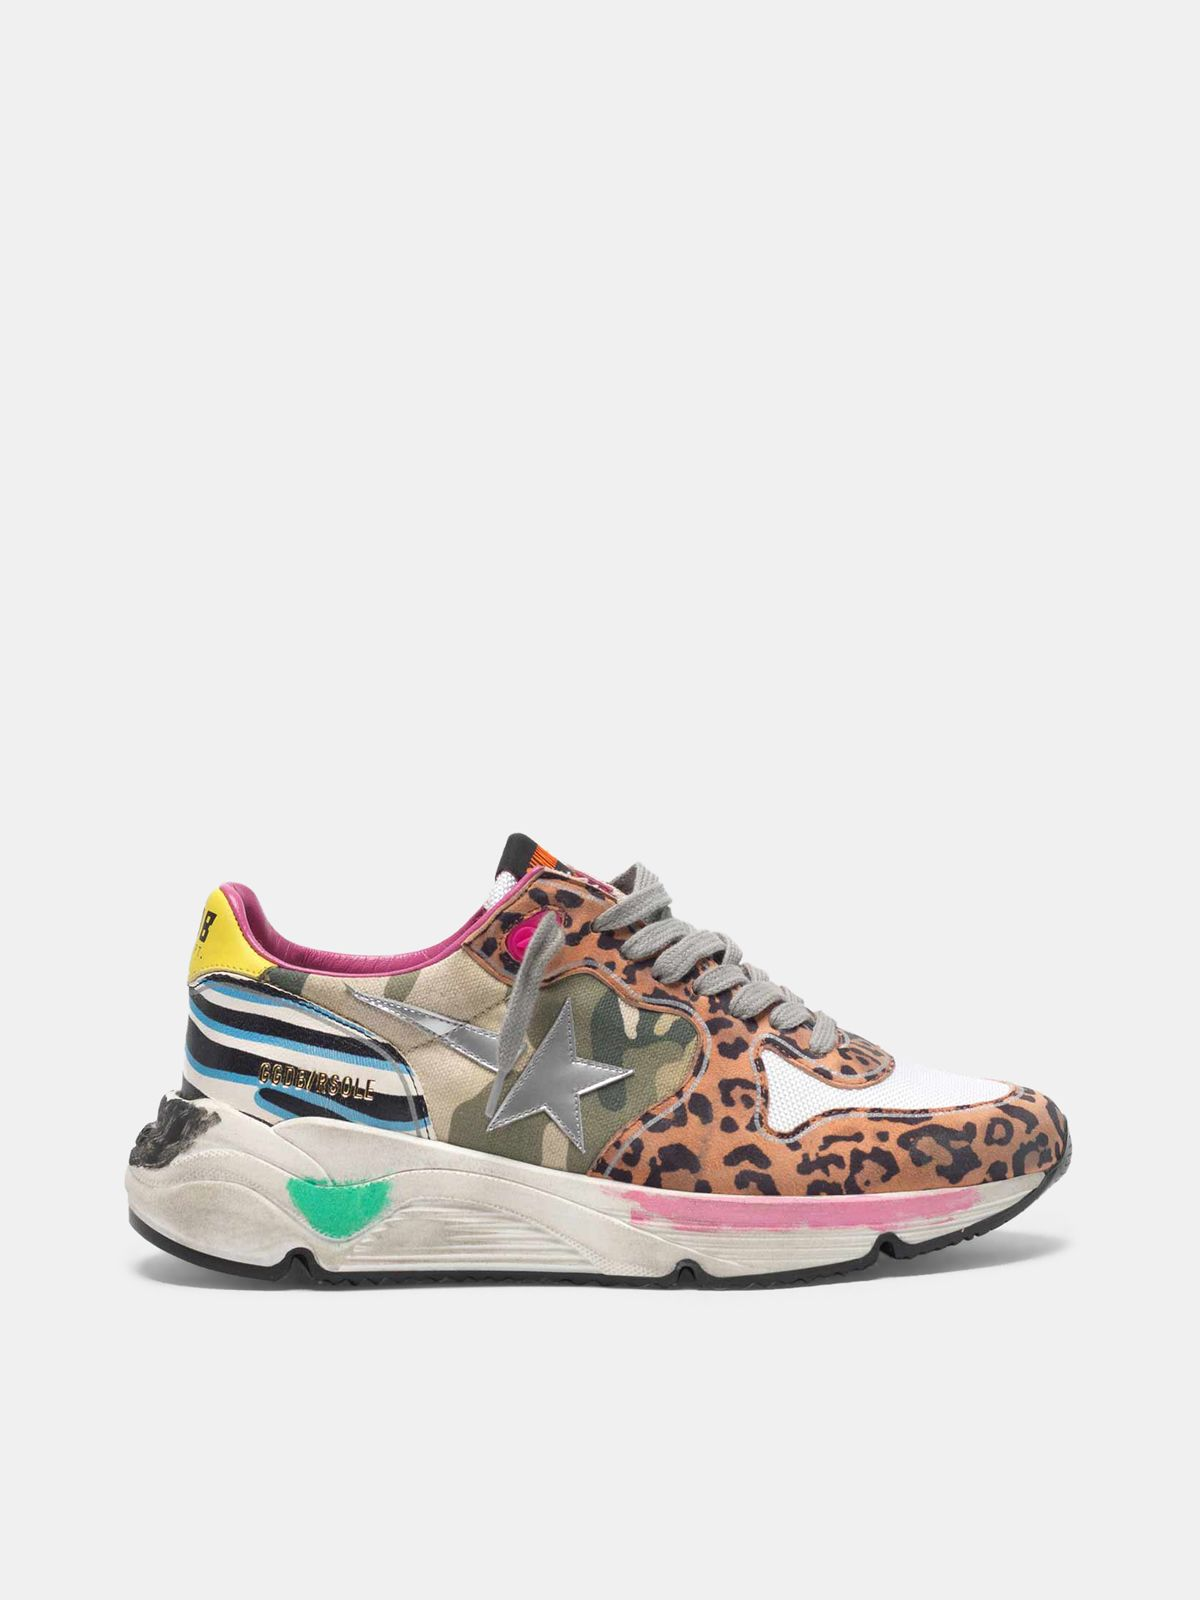 Golden Goose - Running Sole sneakers with mixed animal-print upper in